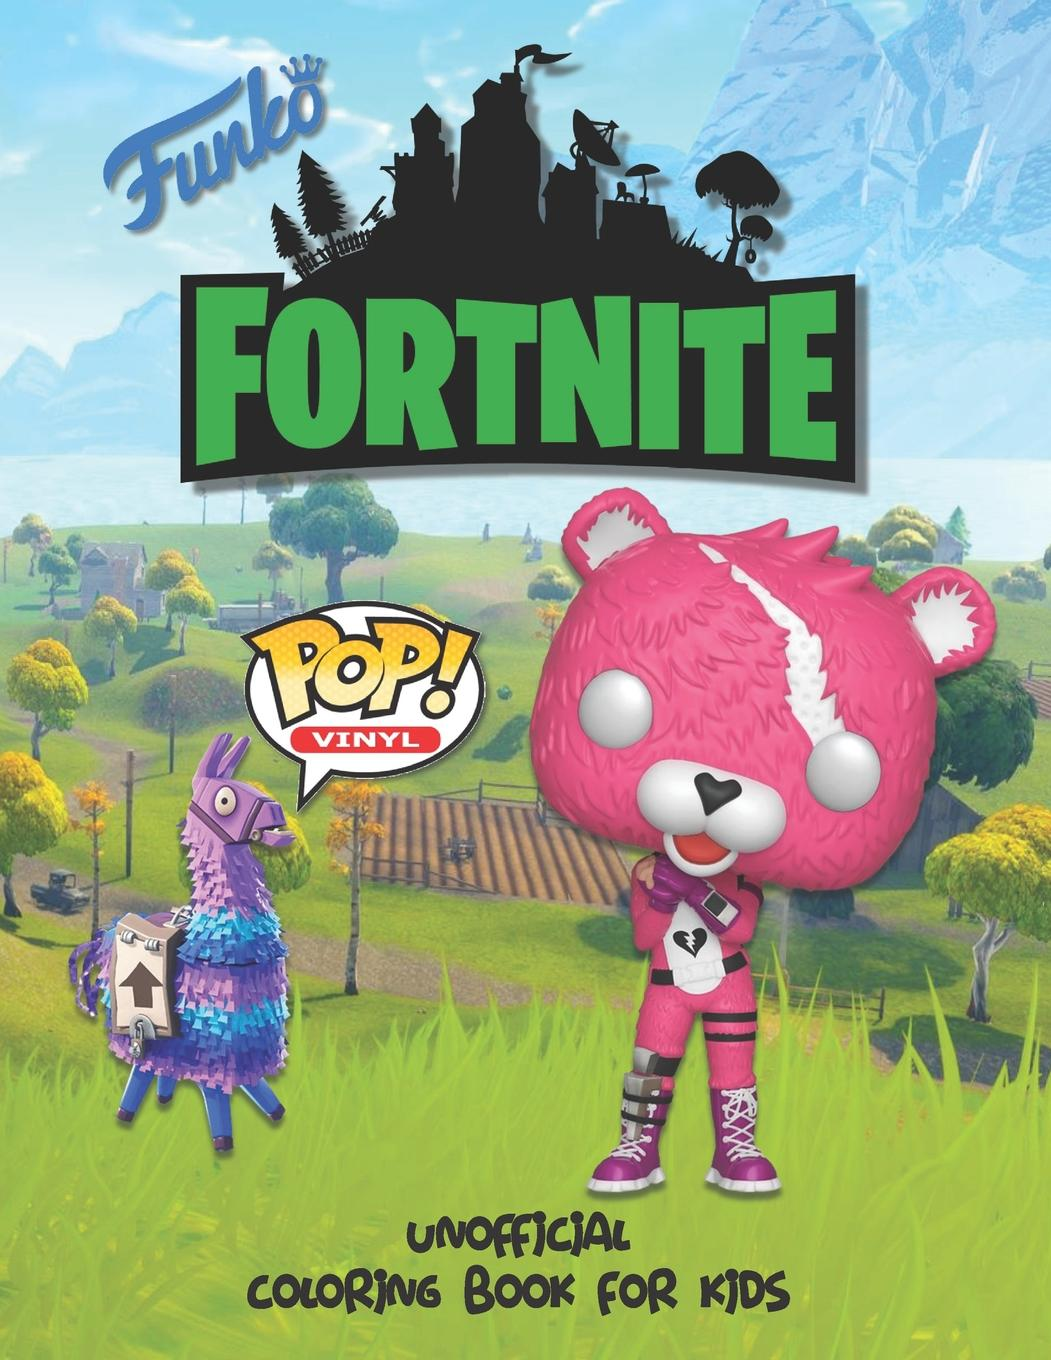 Funko Fortnite Unofficial Coloring Book For Kids Perfect For Preschooler And Young Children Of All Ages Paperback Walmart Com Walmart Com